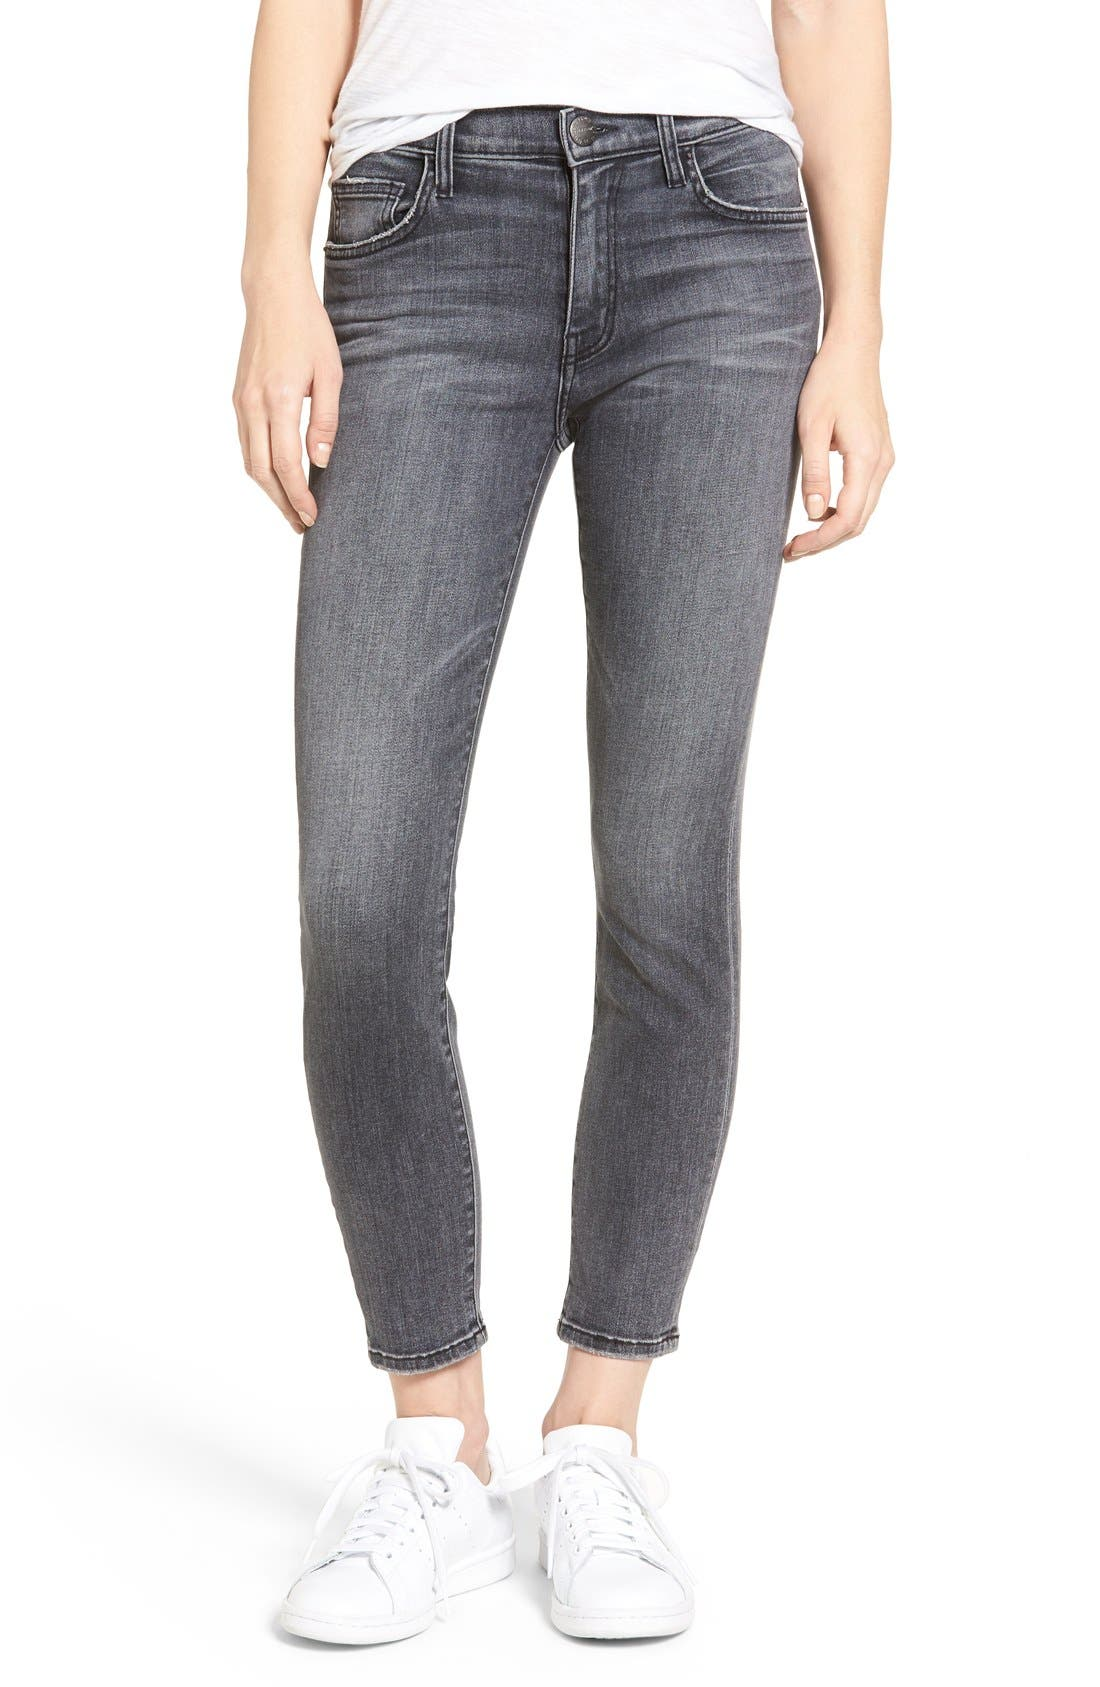 Main Image - Current/Elliott The High Waist Stiletto Ankle Skinny Jeans  (Everett)